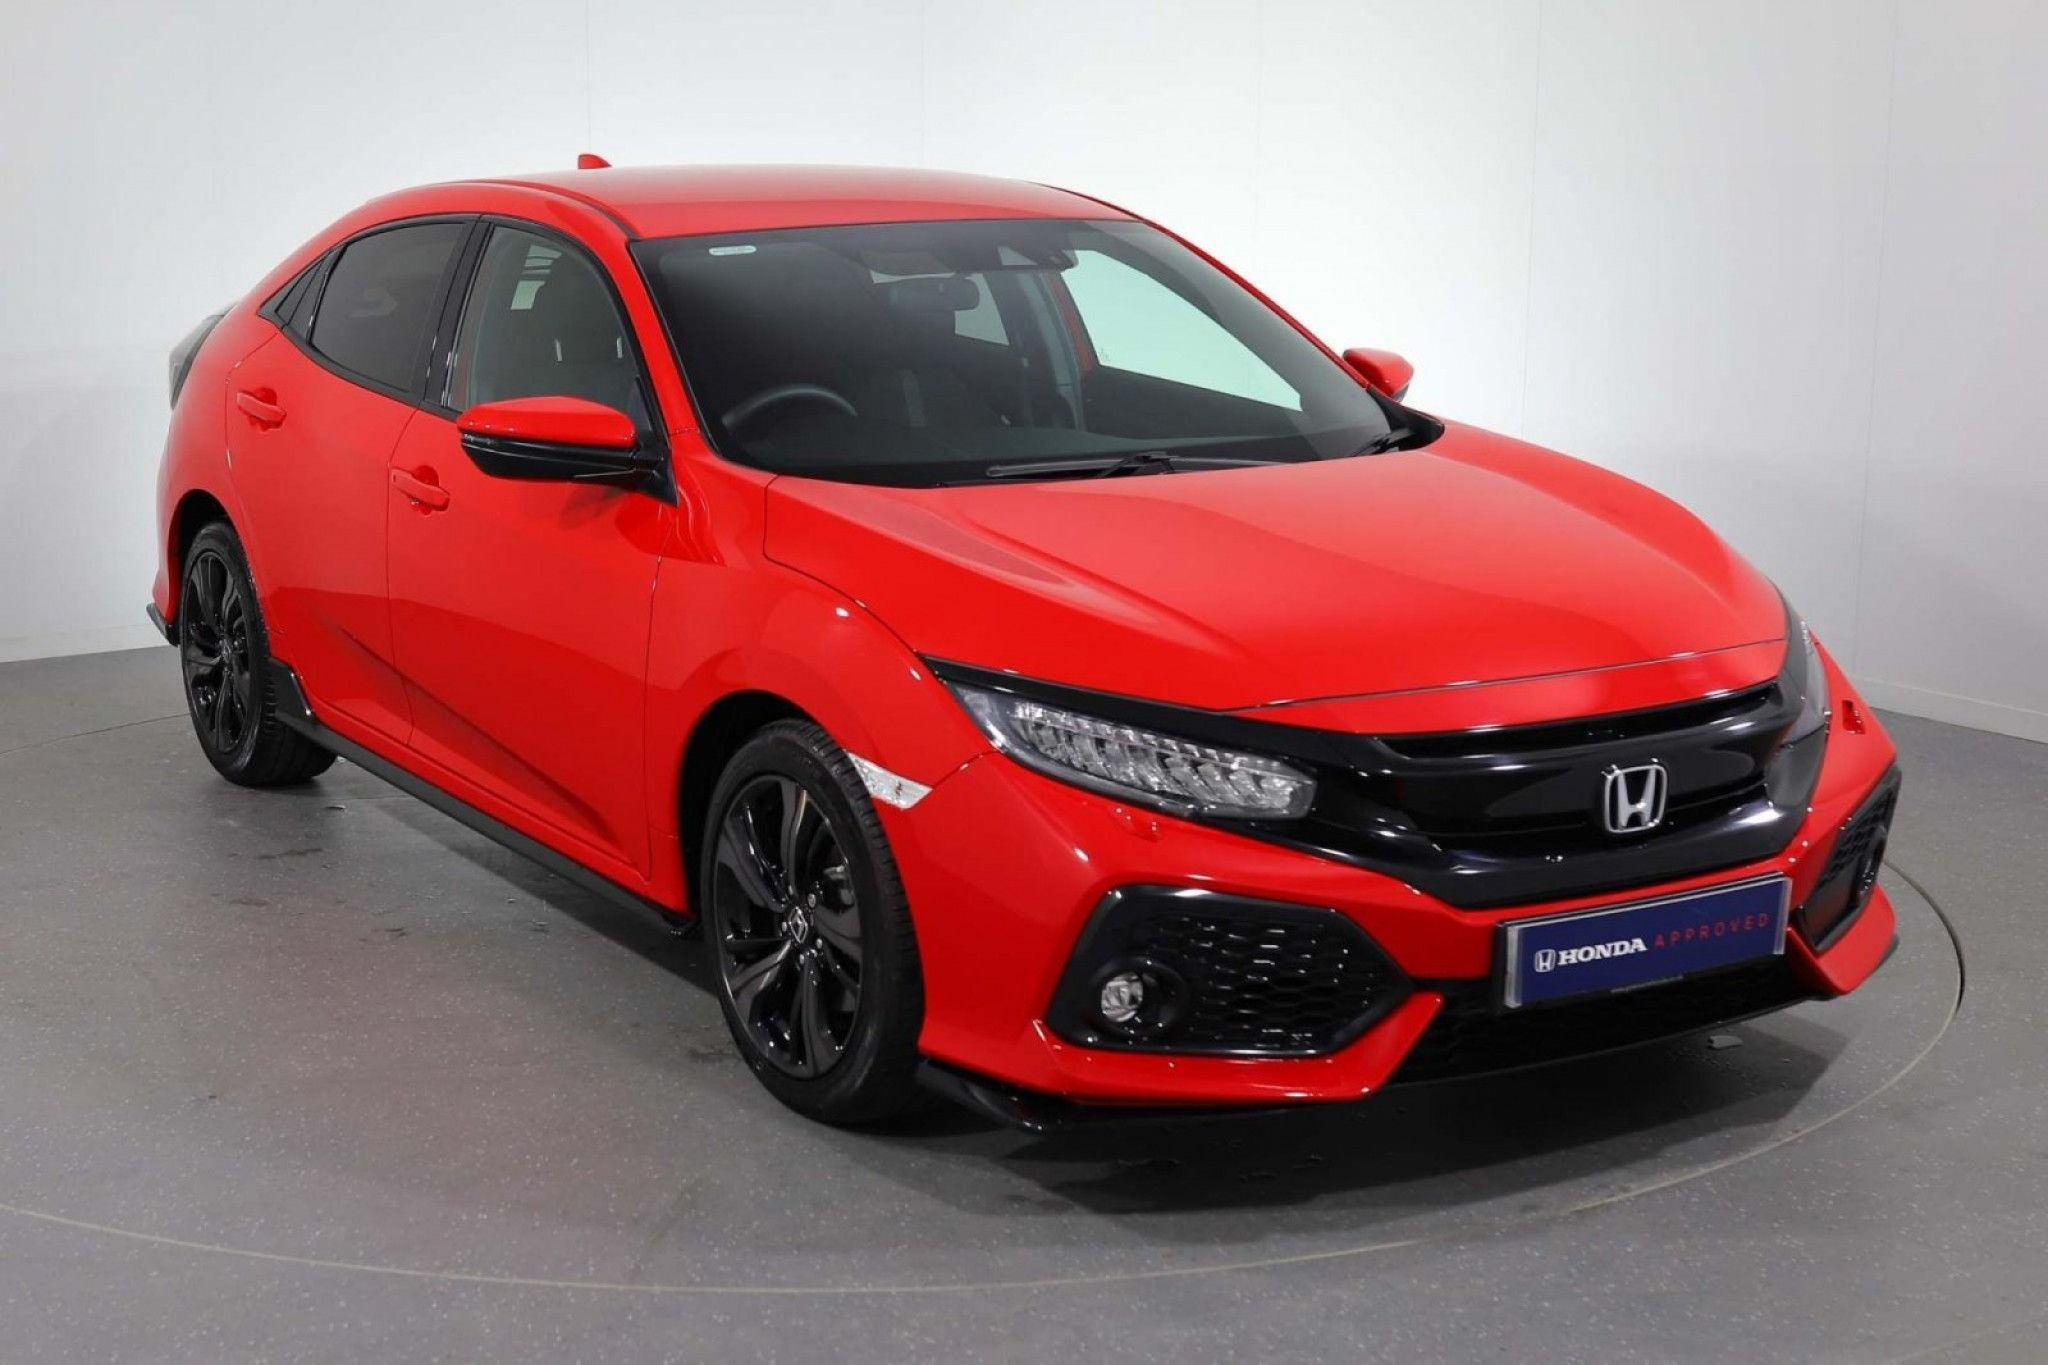 Honda Civic 1.5 Vtec Turbo Sport 5Dr in 2020 Honda civic